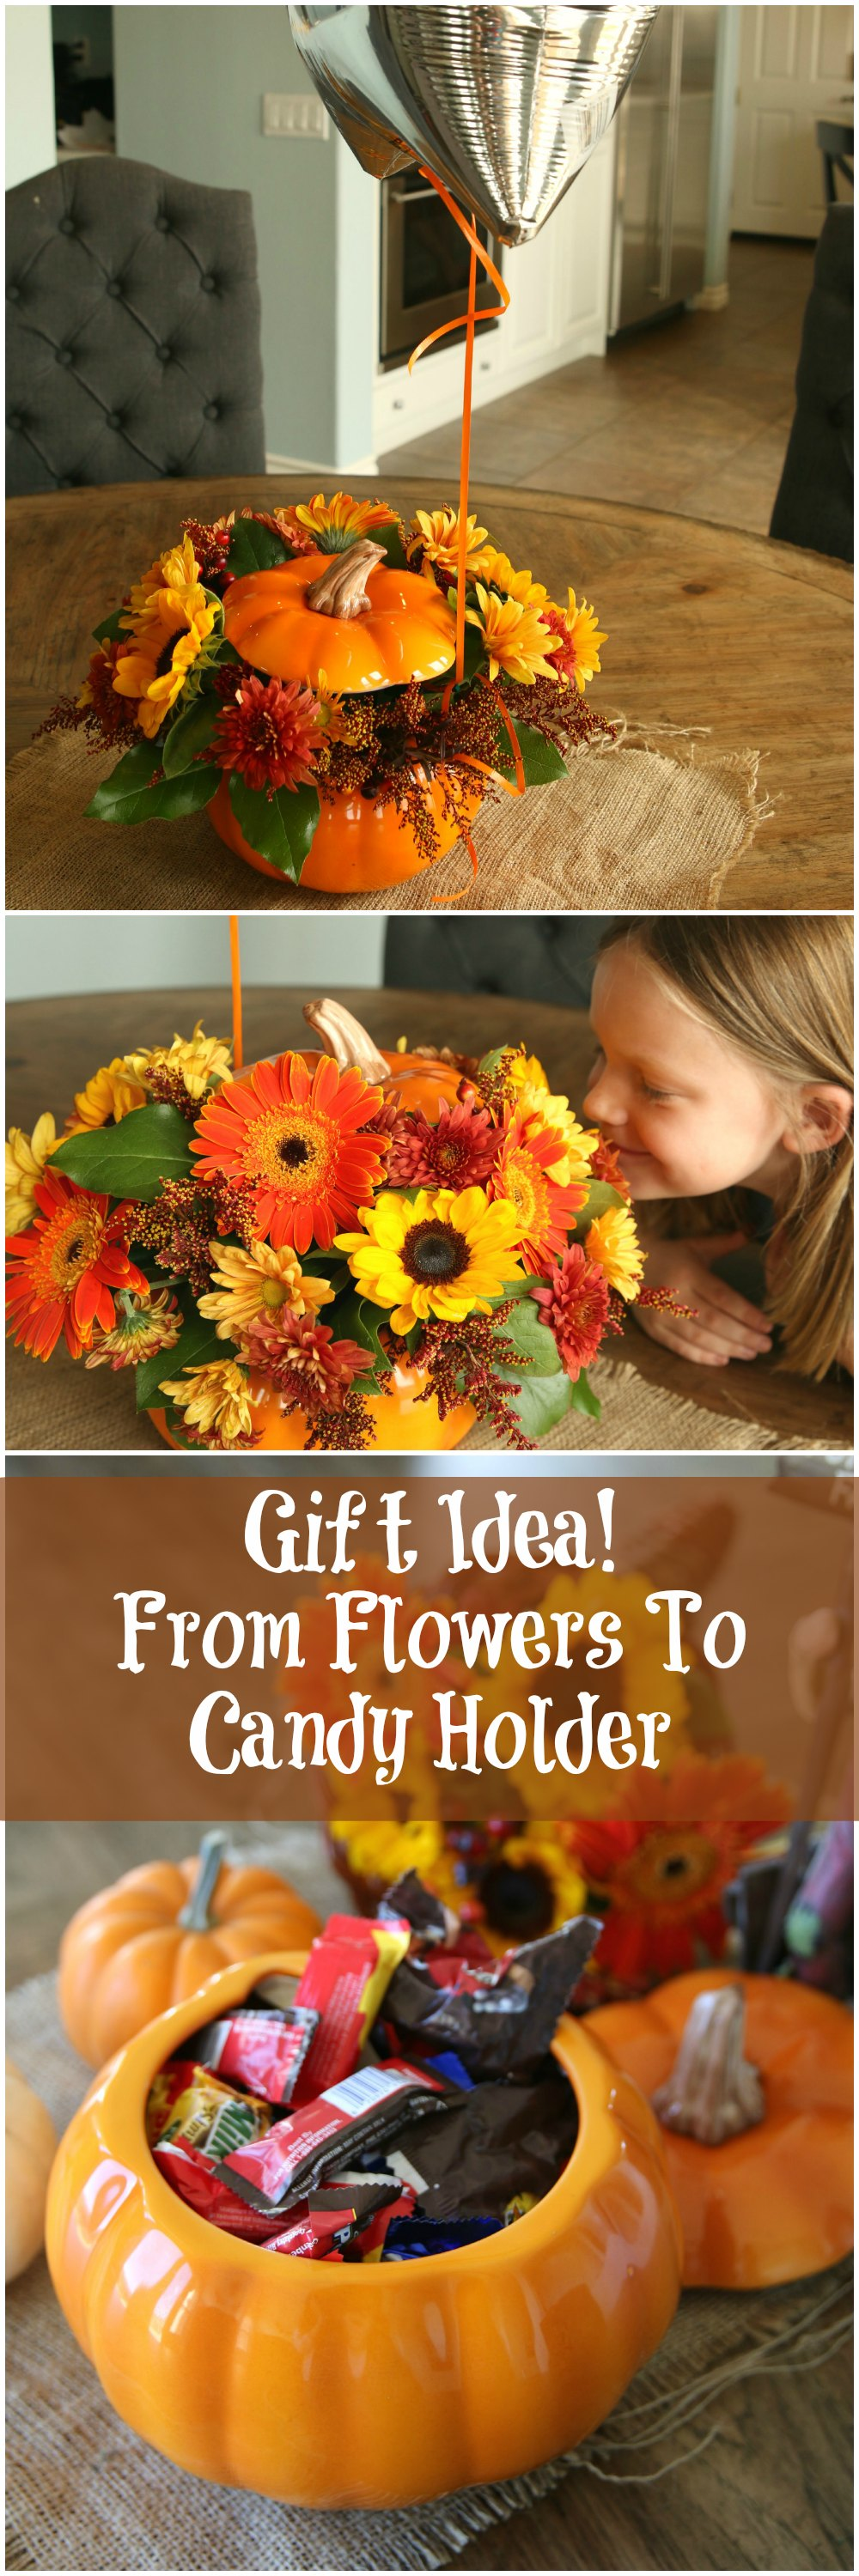 pumpkin flower gift idea